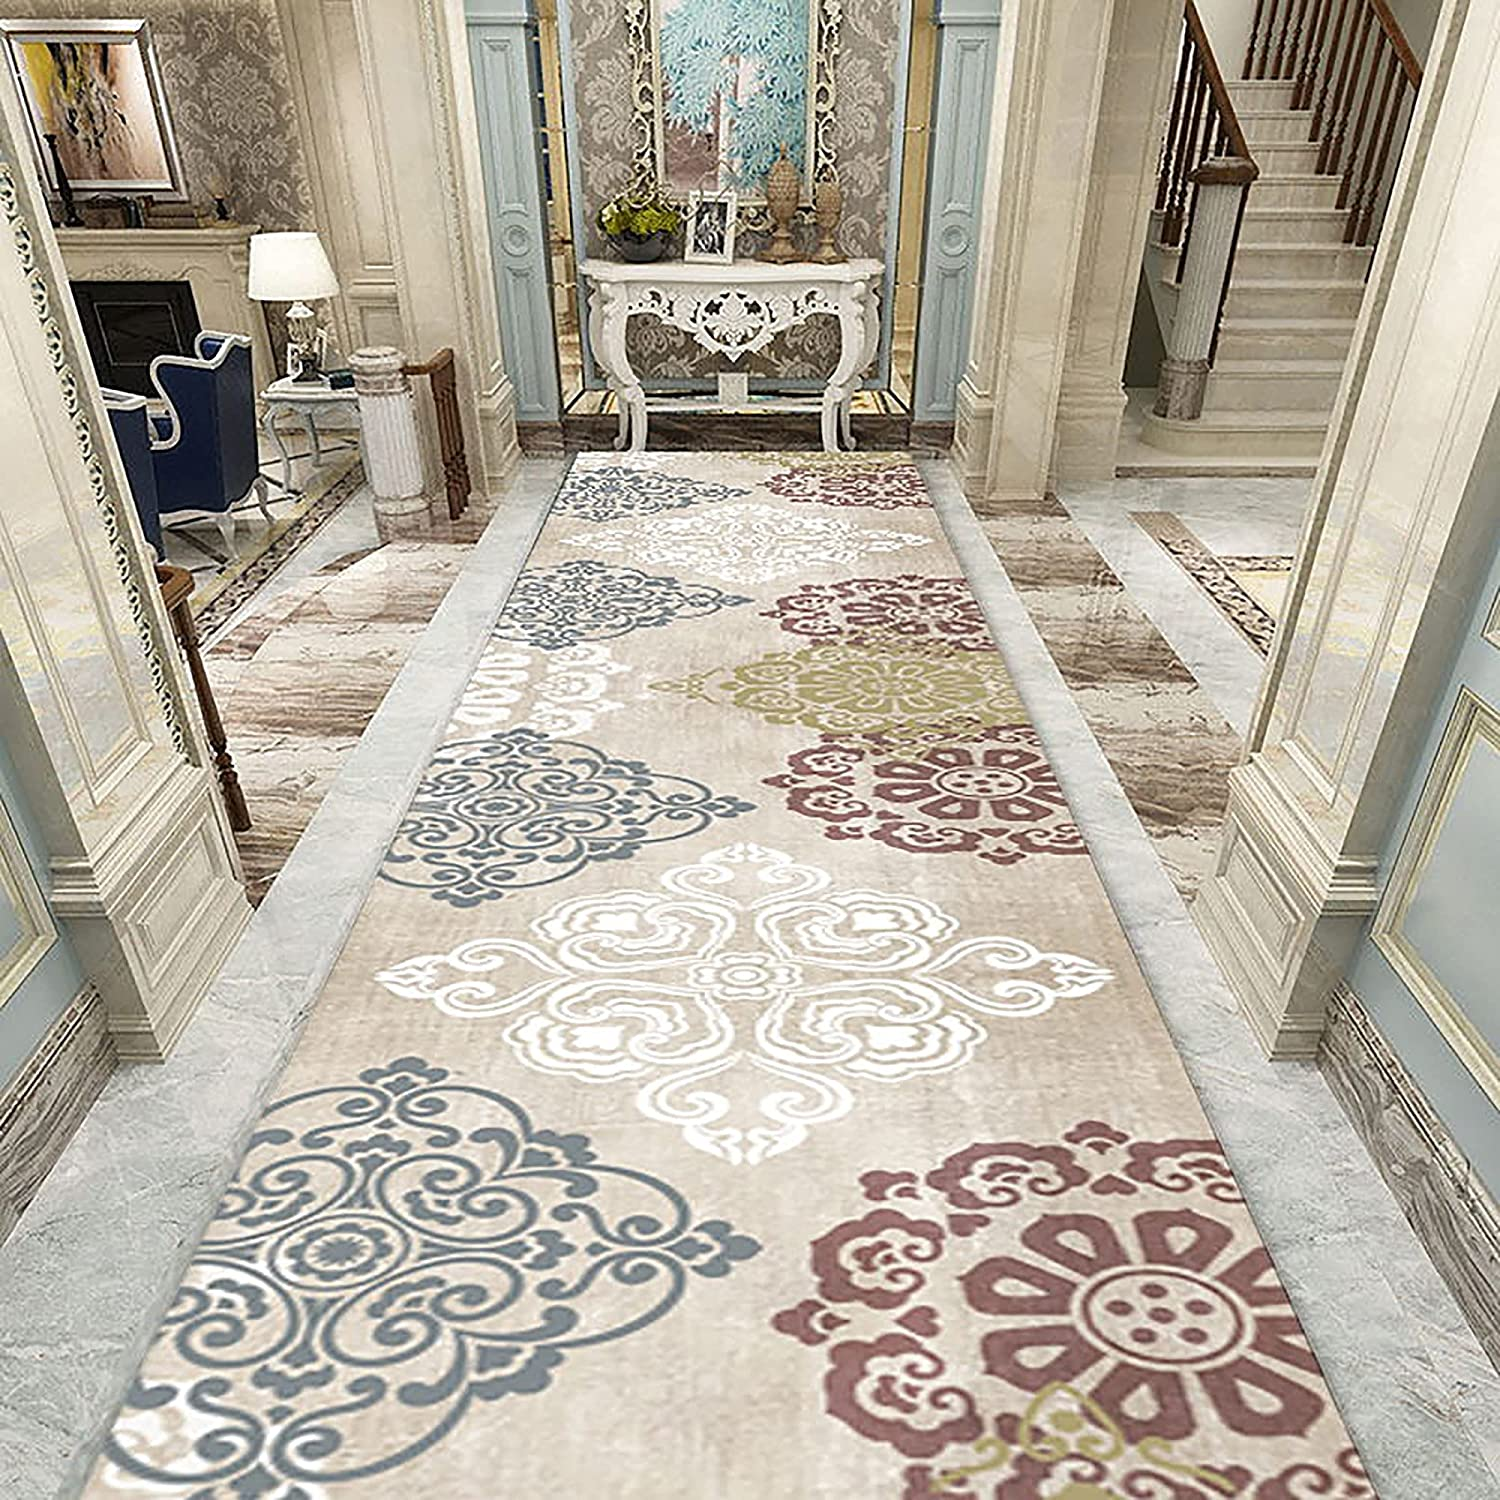 1 year warranty CHY Hallway Runner Rug Modern Machine B Animer and price revision Area Carpet for Washable